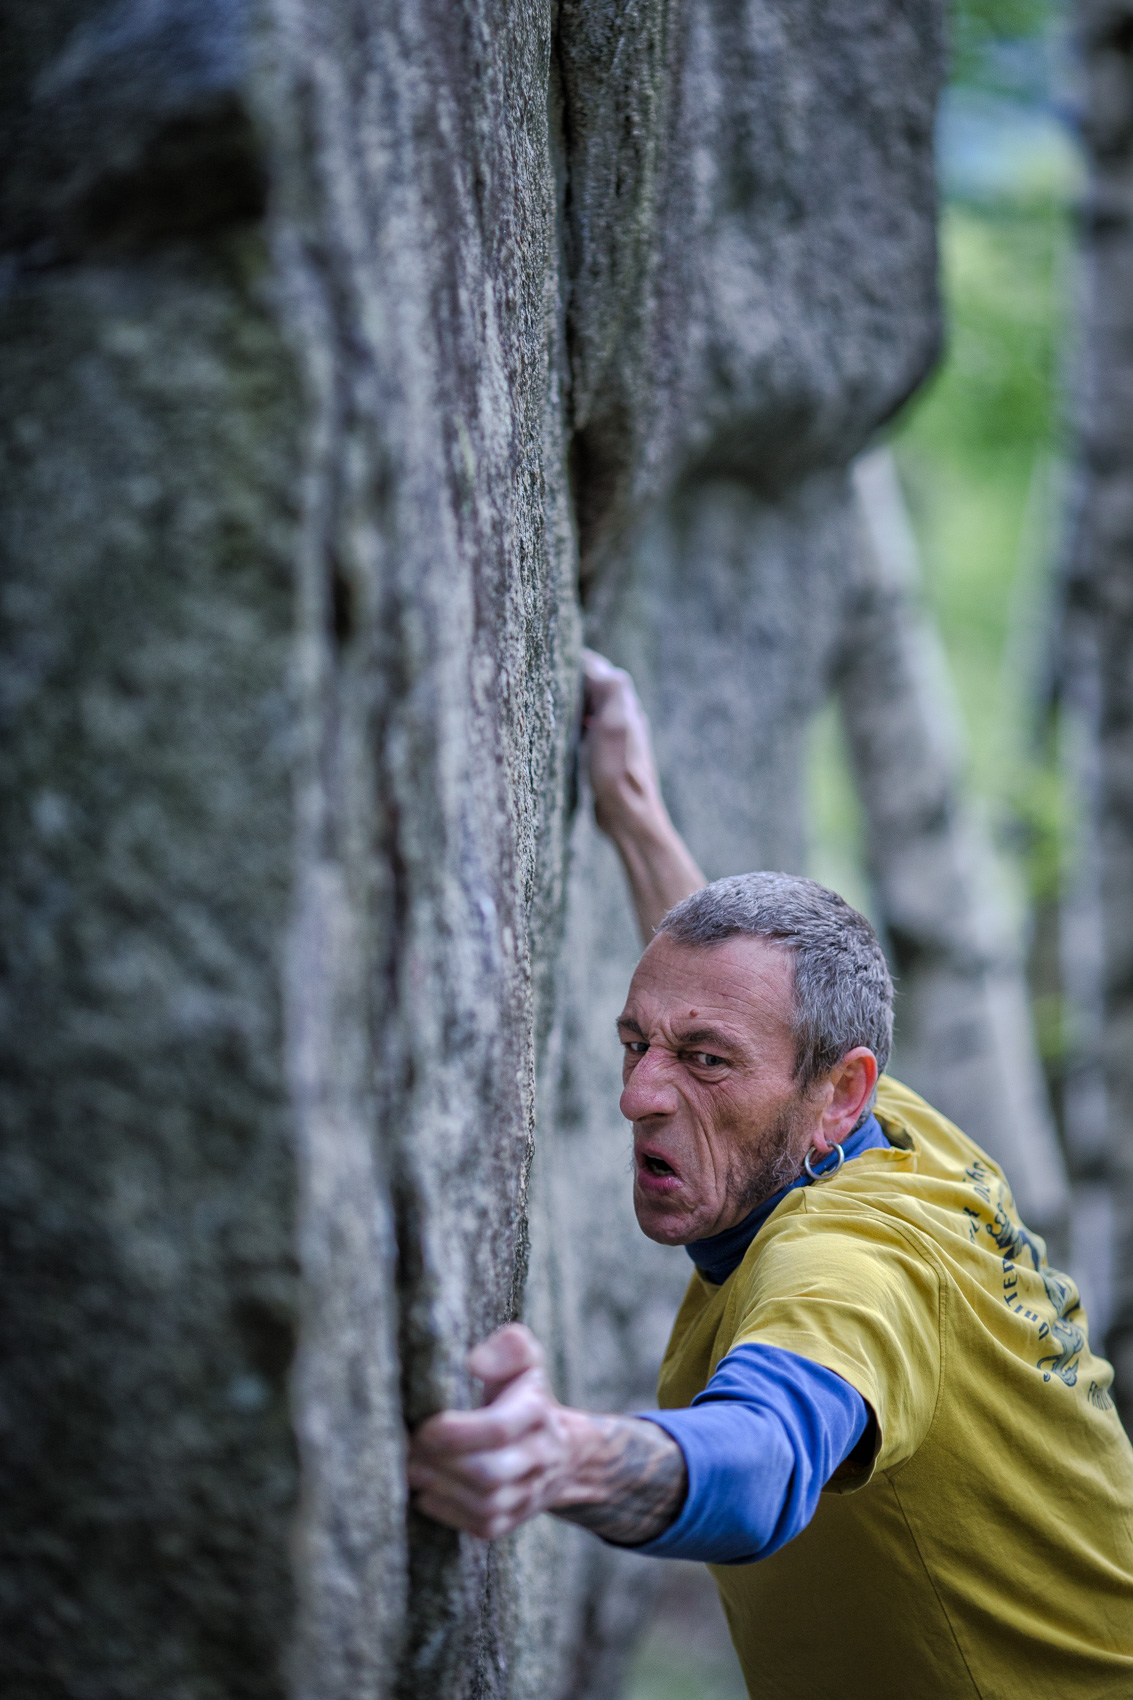 Facial expression | Stefan Kuerzi - Climbing Photography